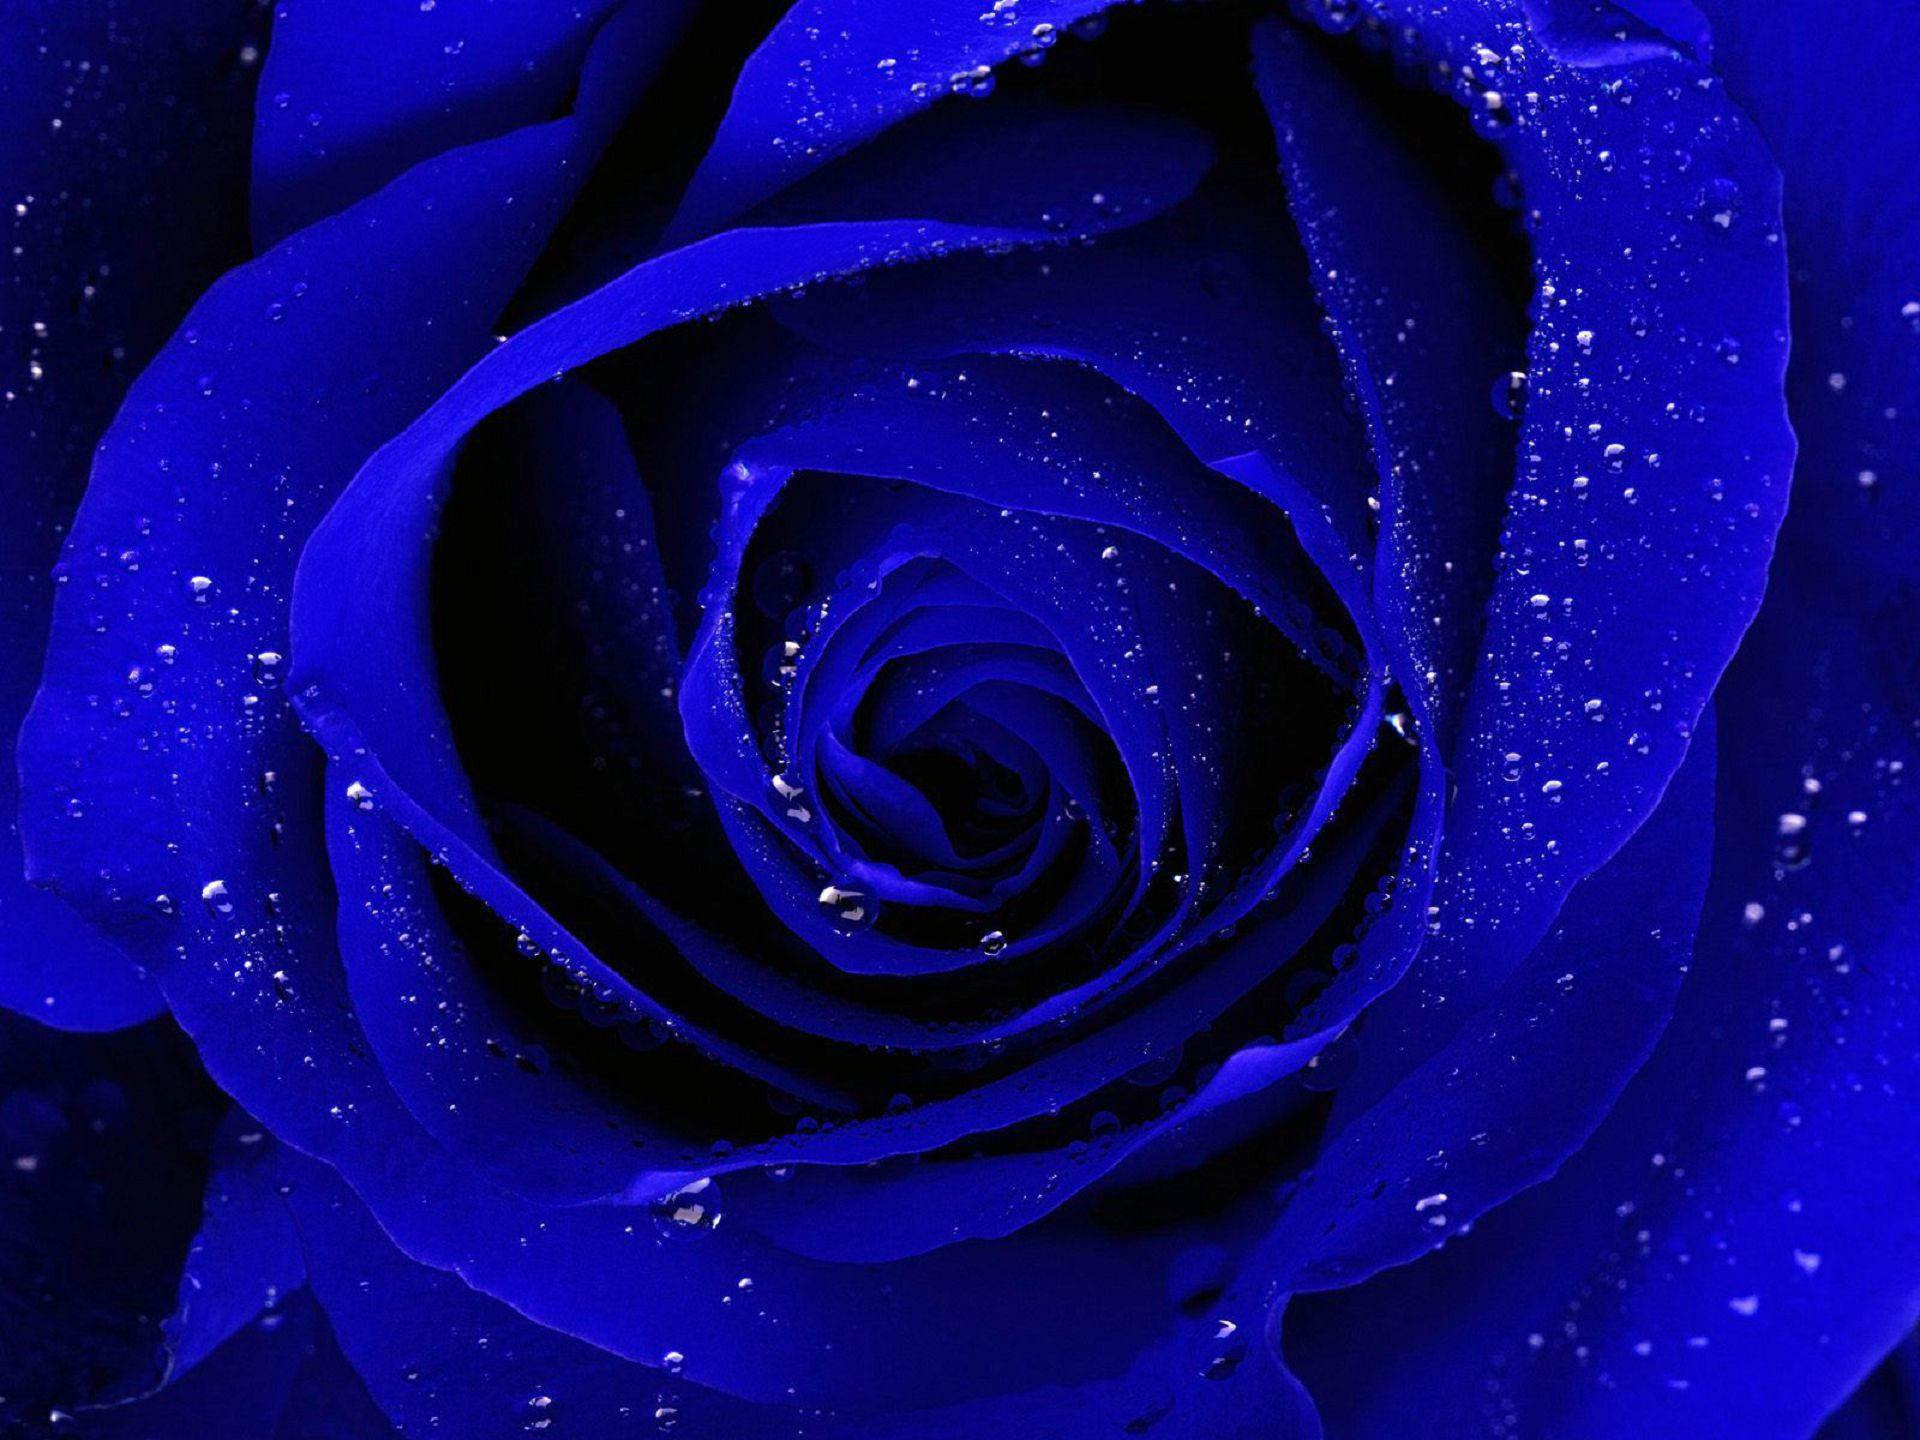 Blue Roses High Quality Wallpapers